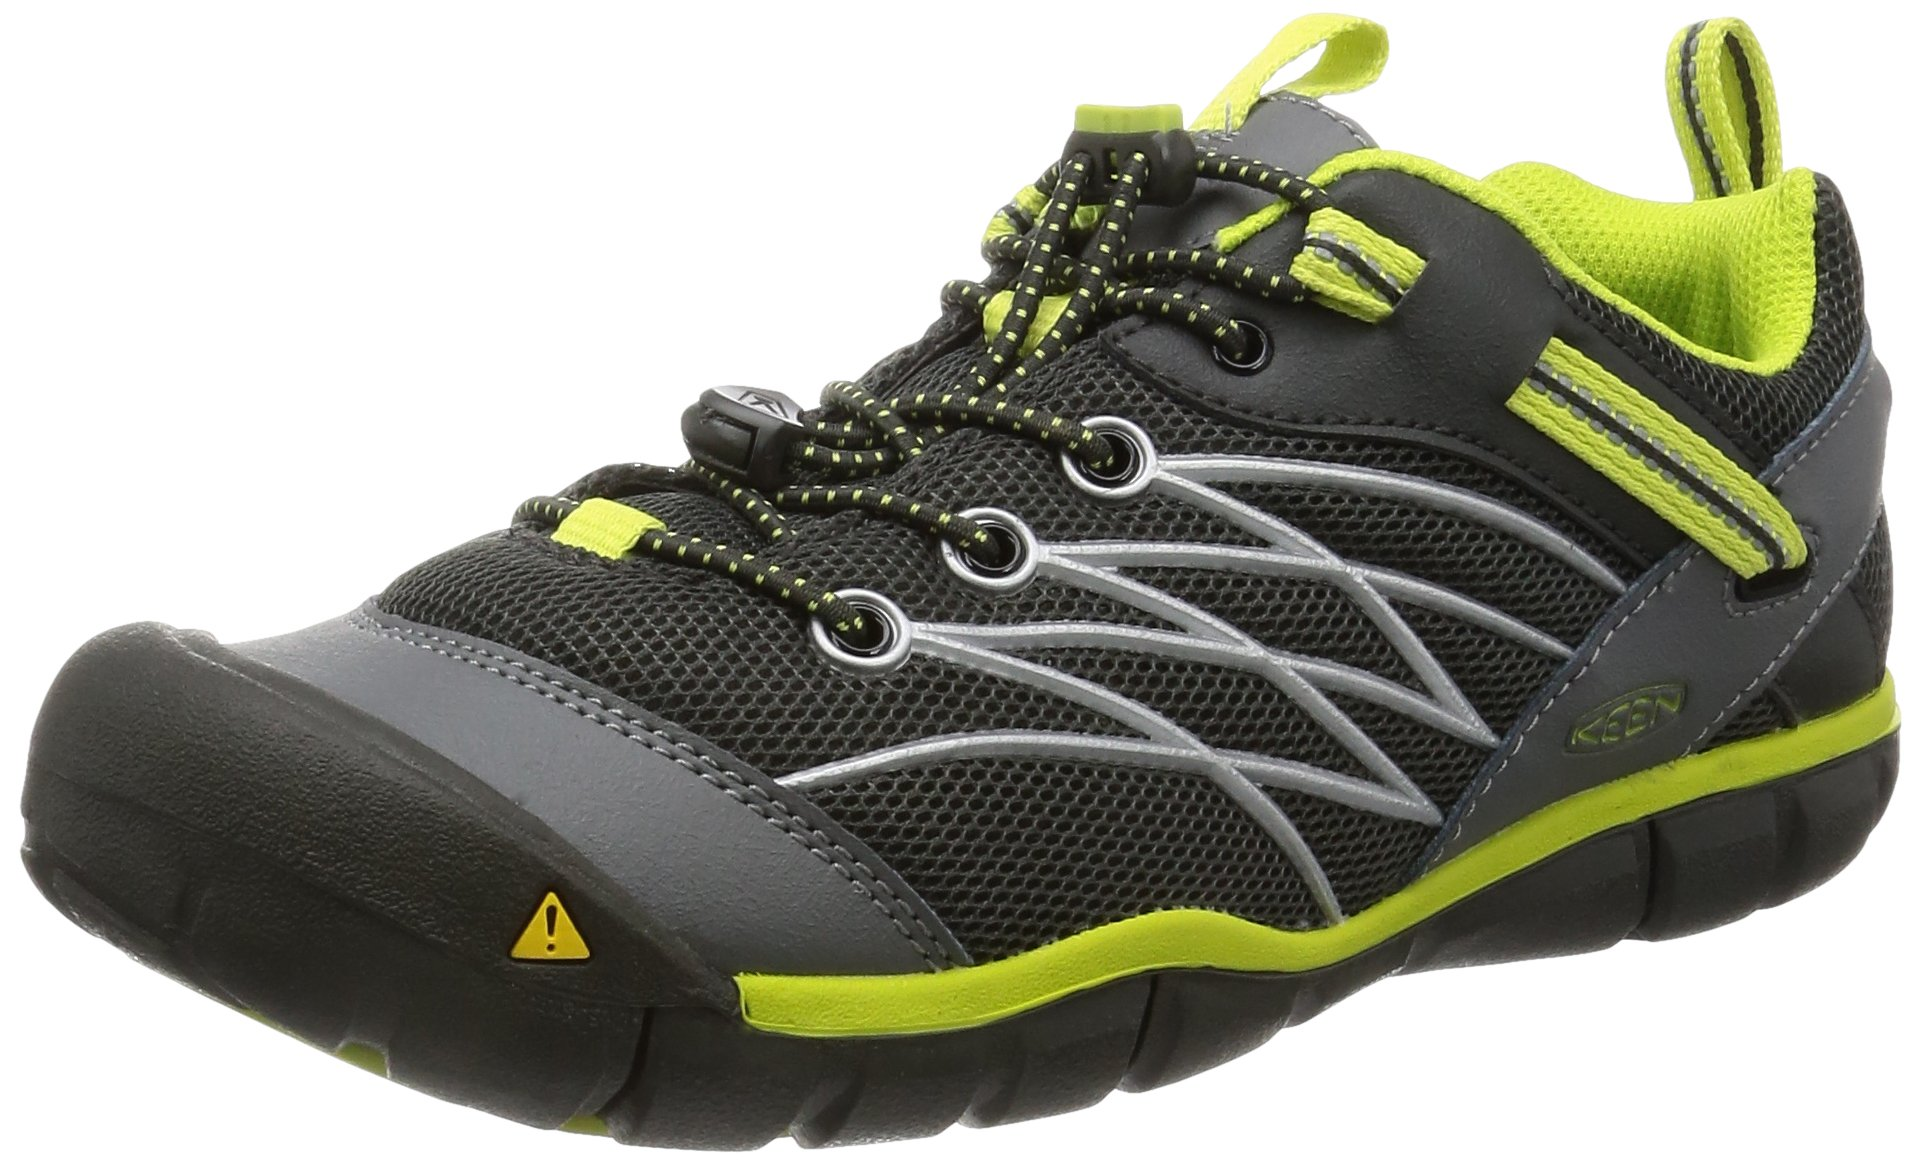 KEEN Chandler CNX Shoe (Toddler/Little Kid/Big Kid),Raven/Bright Chartreuse,8 M US Toddler